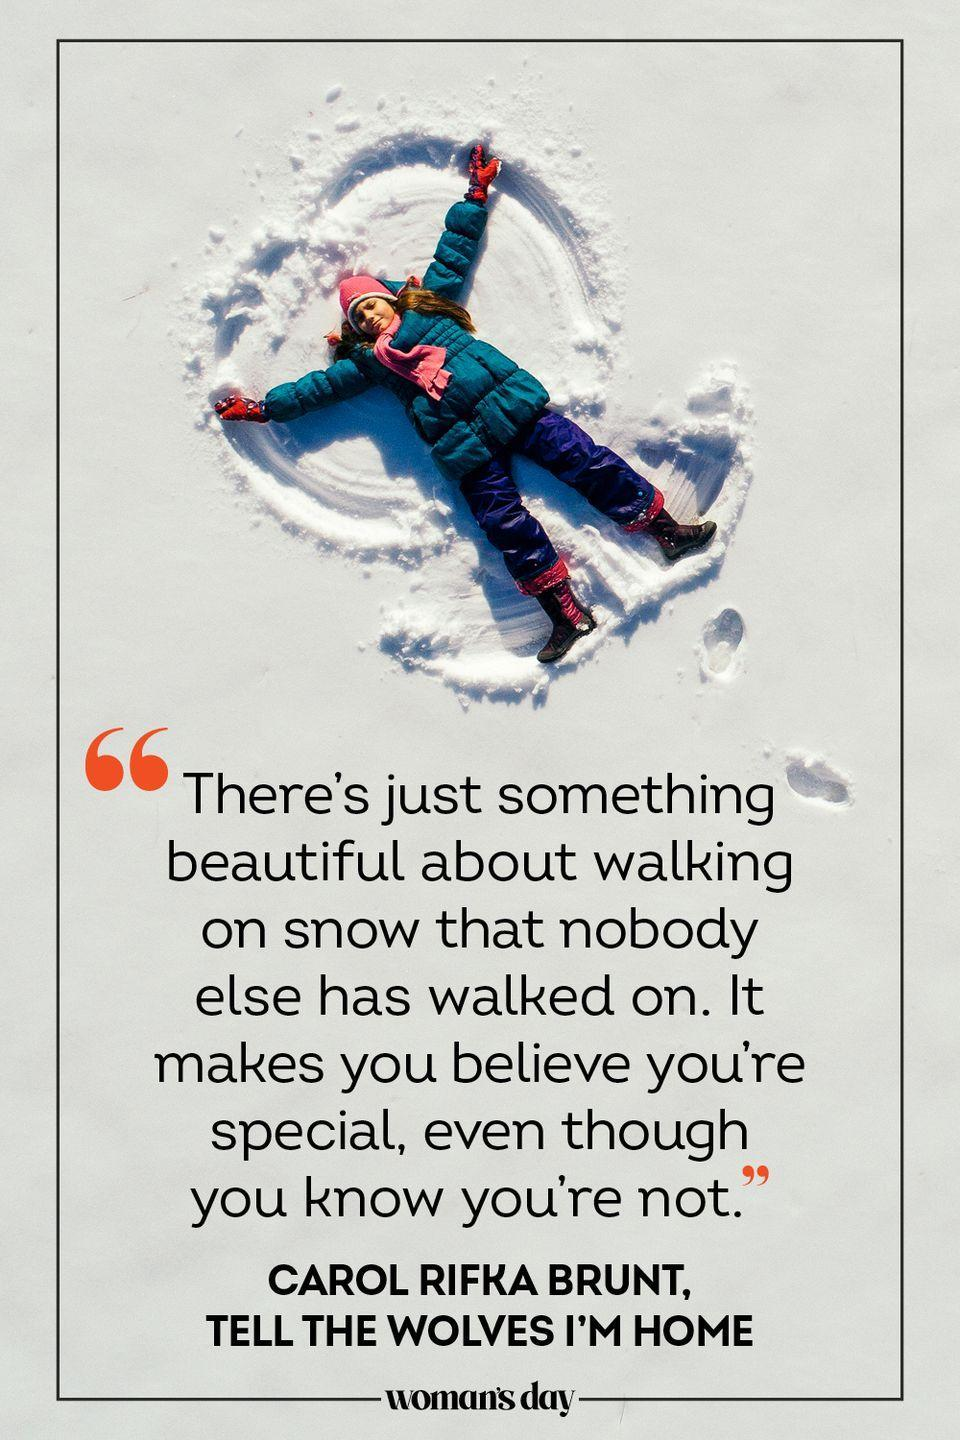 "<p>""There's just something beautiful about walking on snow that nobody else has walked on. It makes you believe you're special, even though you know you're not."" — Carol Rifka Brunt, <em>Tell the Wolves I'm Home</em></p>"